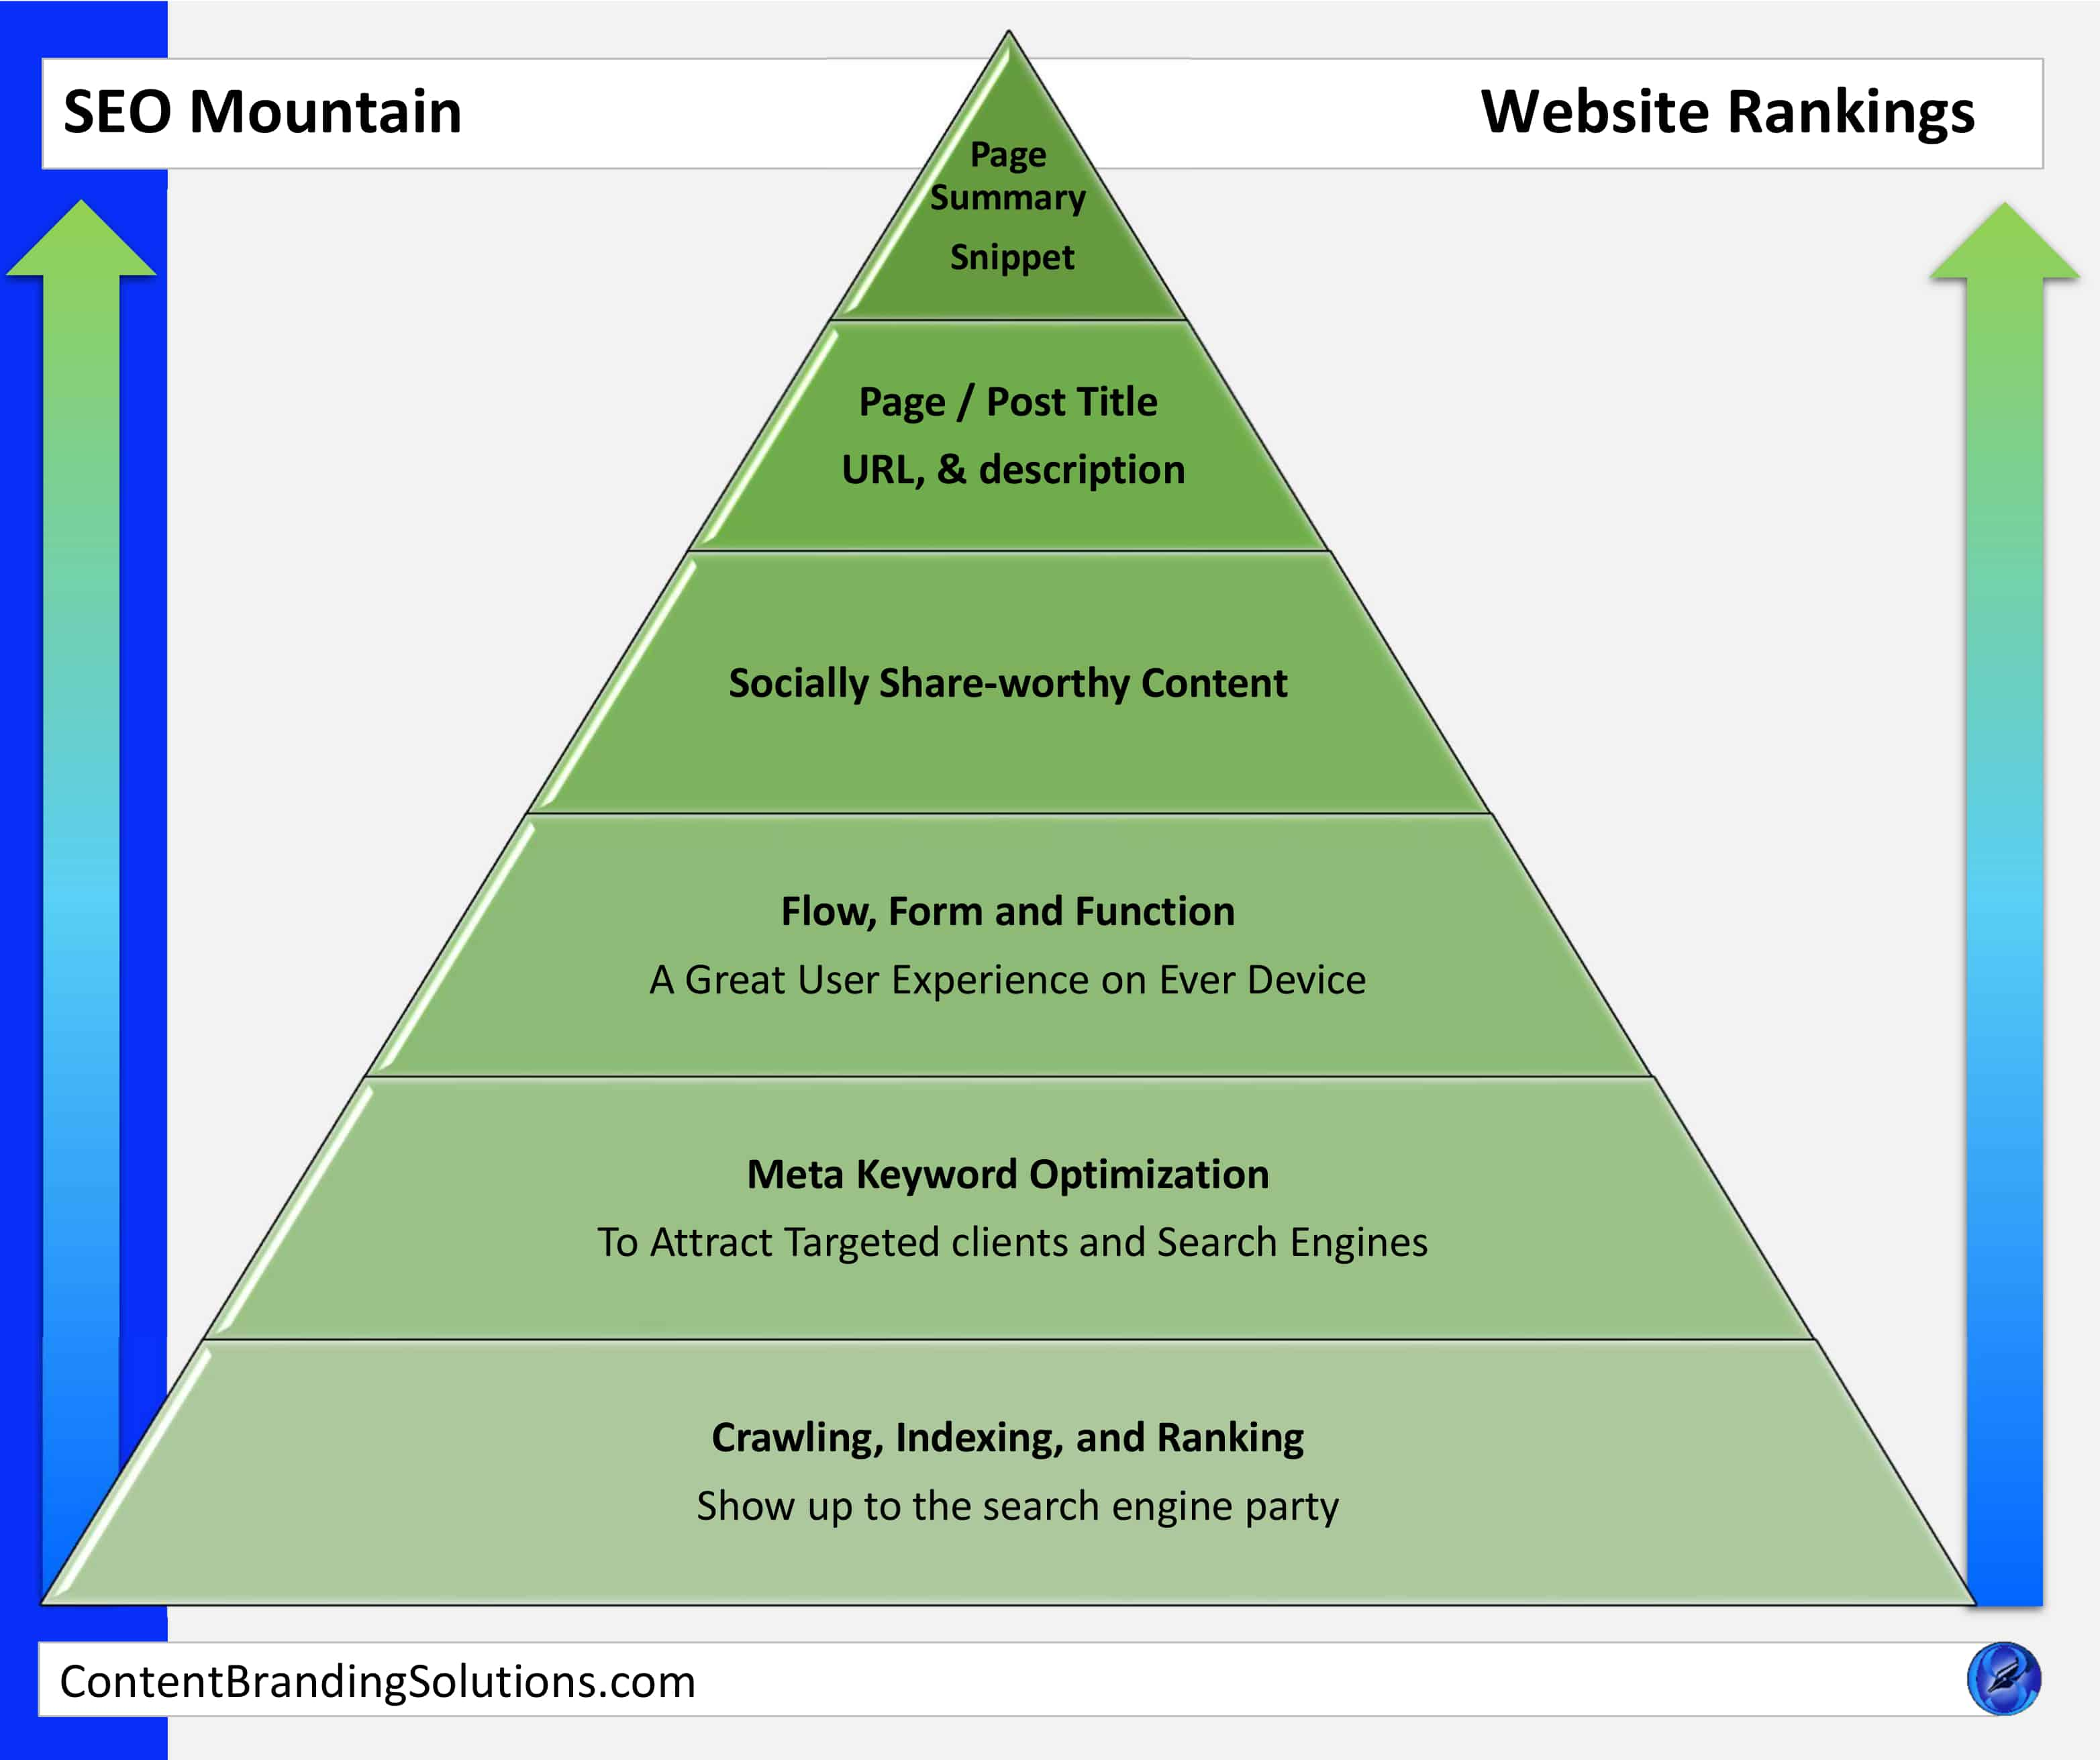 Find Out More about the Website SEO Mountain, Website Development, Website Design,  SEO, Graphics, and Infographics – Search Engine Optimization from Content Branding Solutions a Digital Marketing company specializing in Website Design and Website Development Services Search Engine Optimization, SEO, Graphics, and Infographics in Denver CO